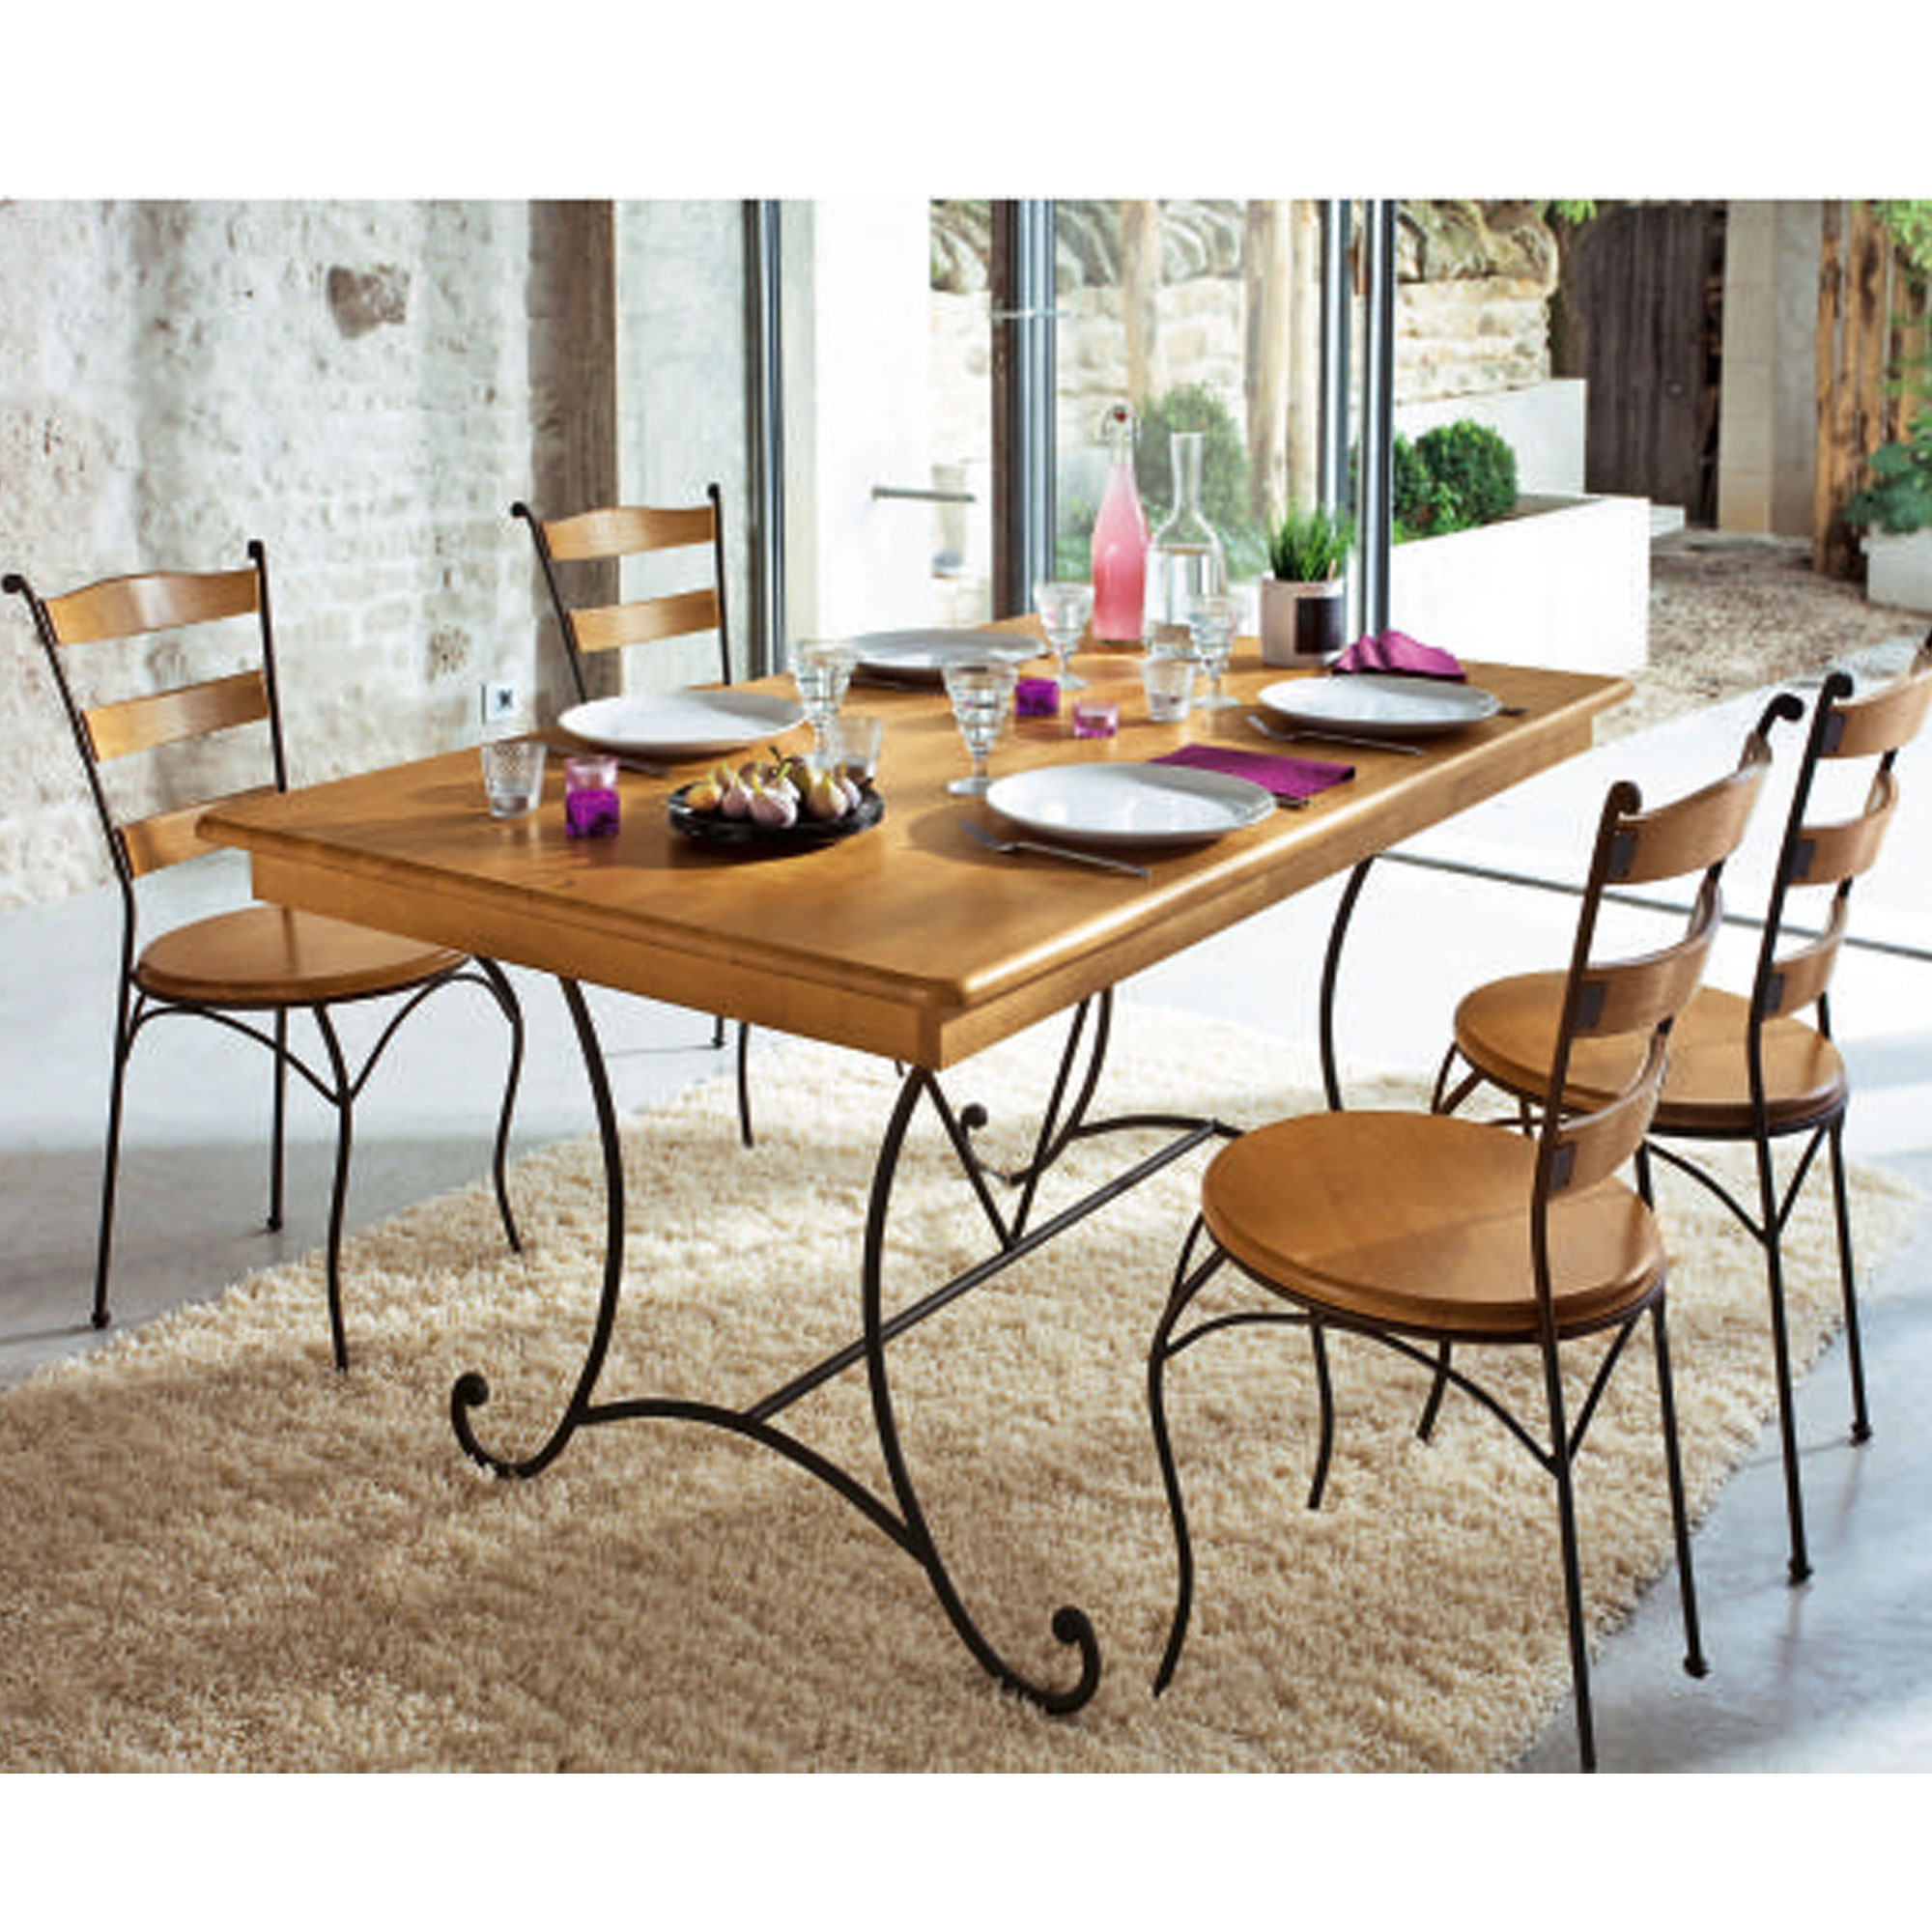 table rectangulaire 4 chaises preston ch ne clair anniversaire 40 ans acheter ce produit. Black Bedroom Furniture Sets. Home Design Ideas